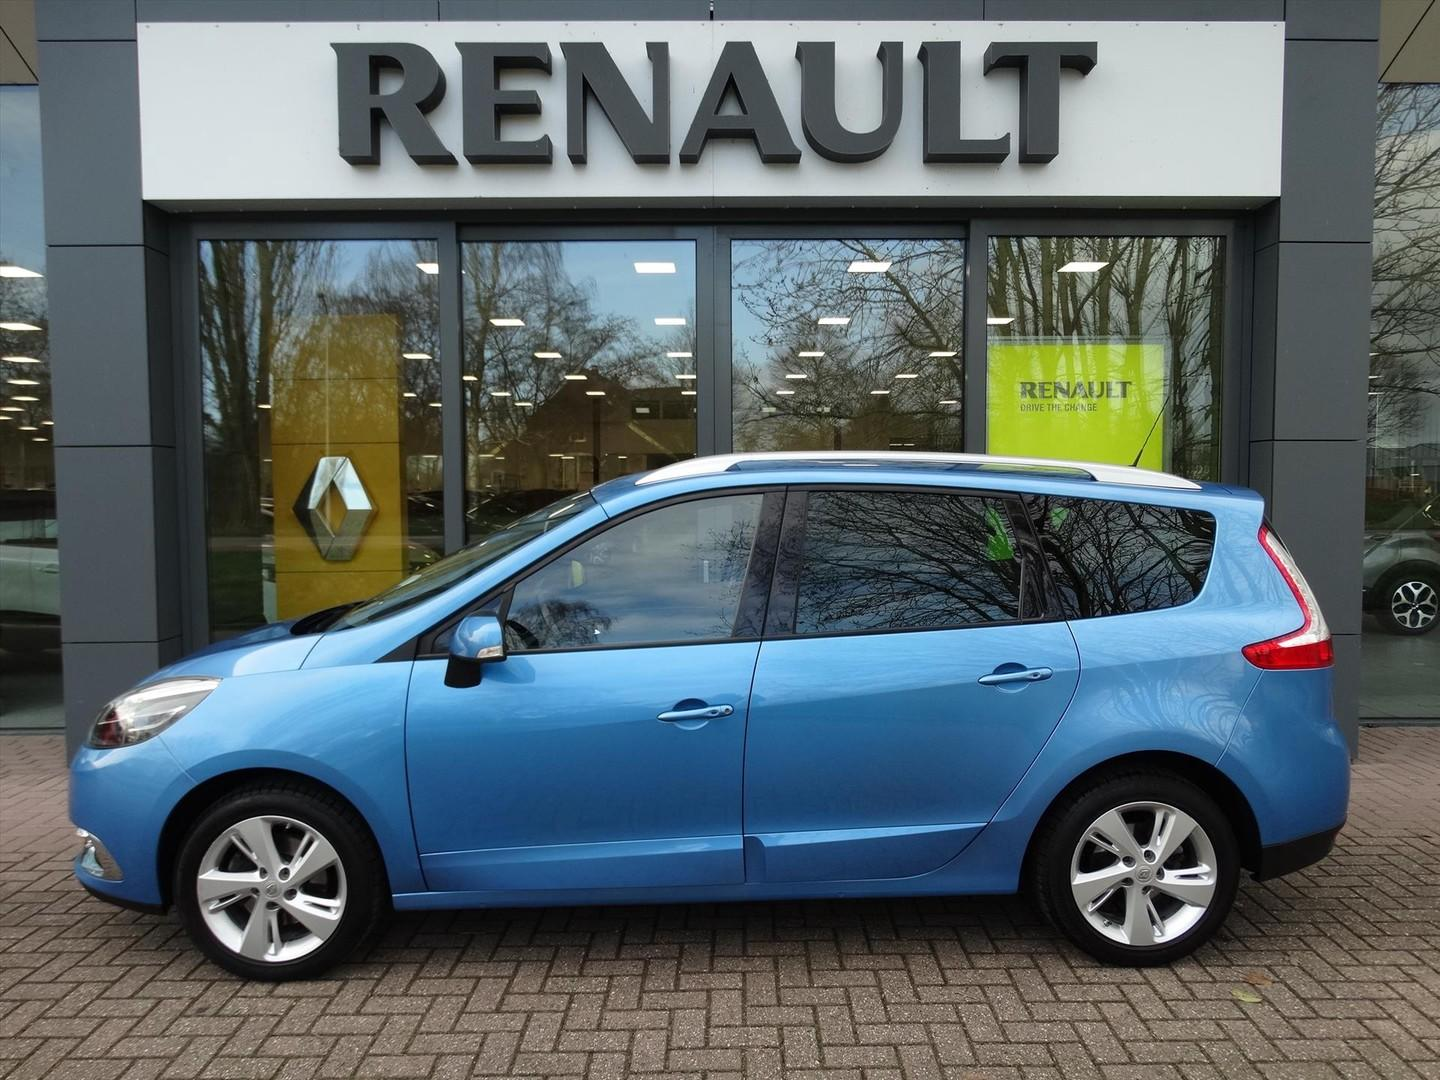 Renault Grand scénic 1.2 tce 130 pk r-cinema